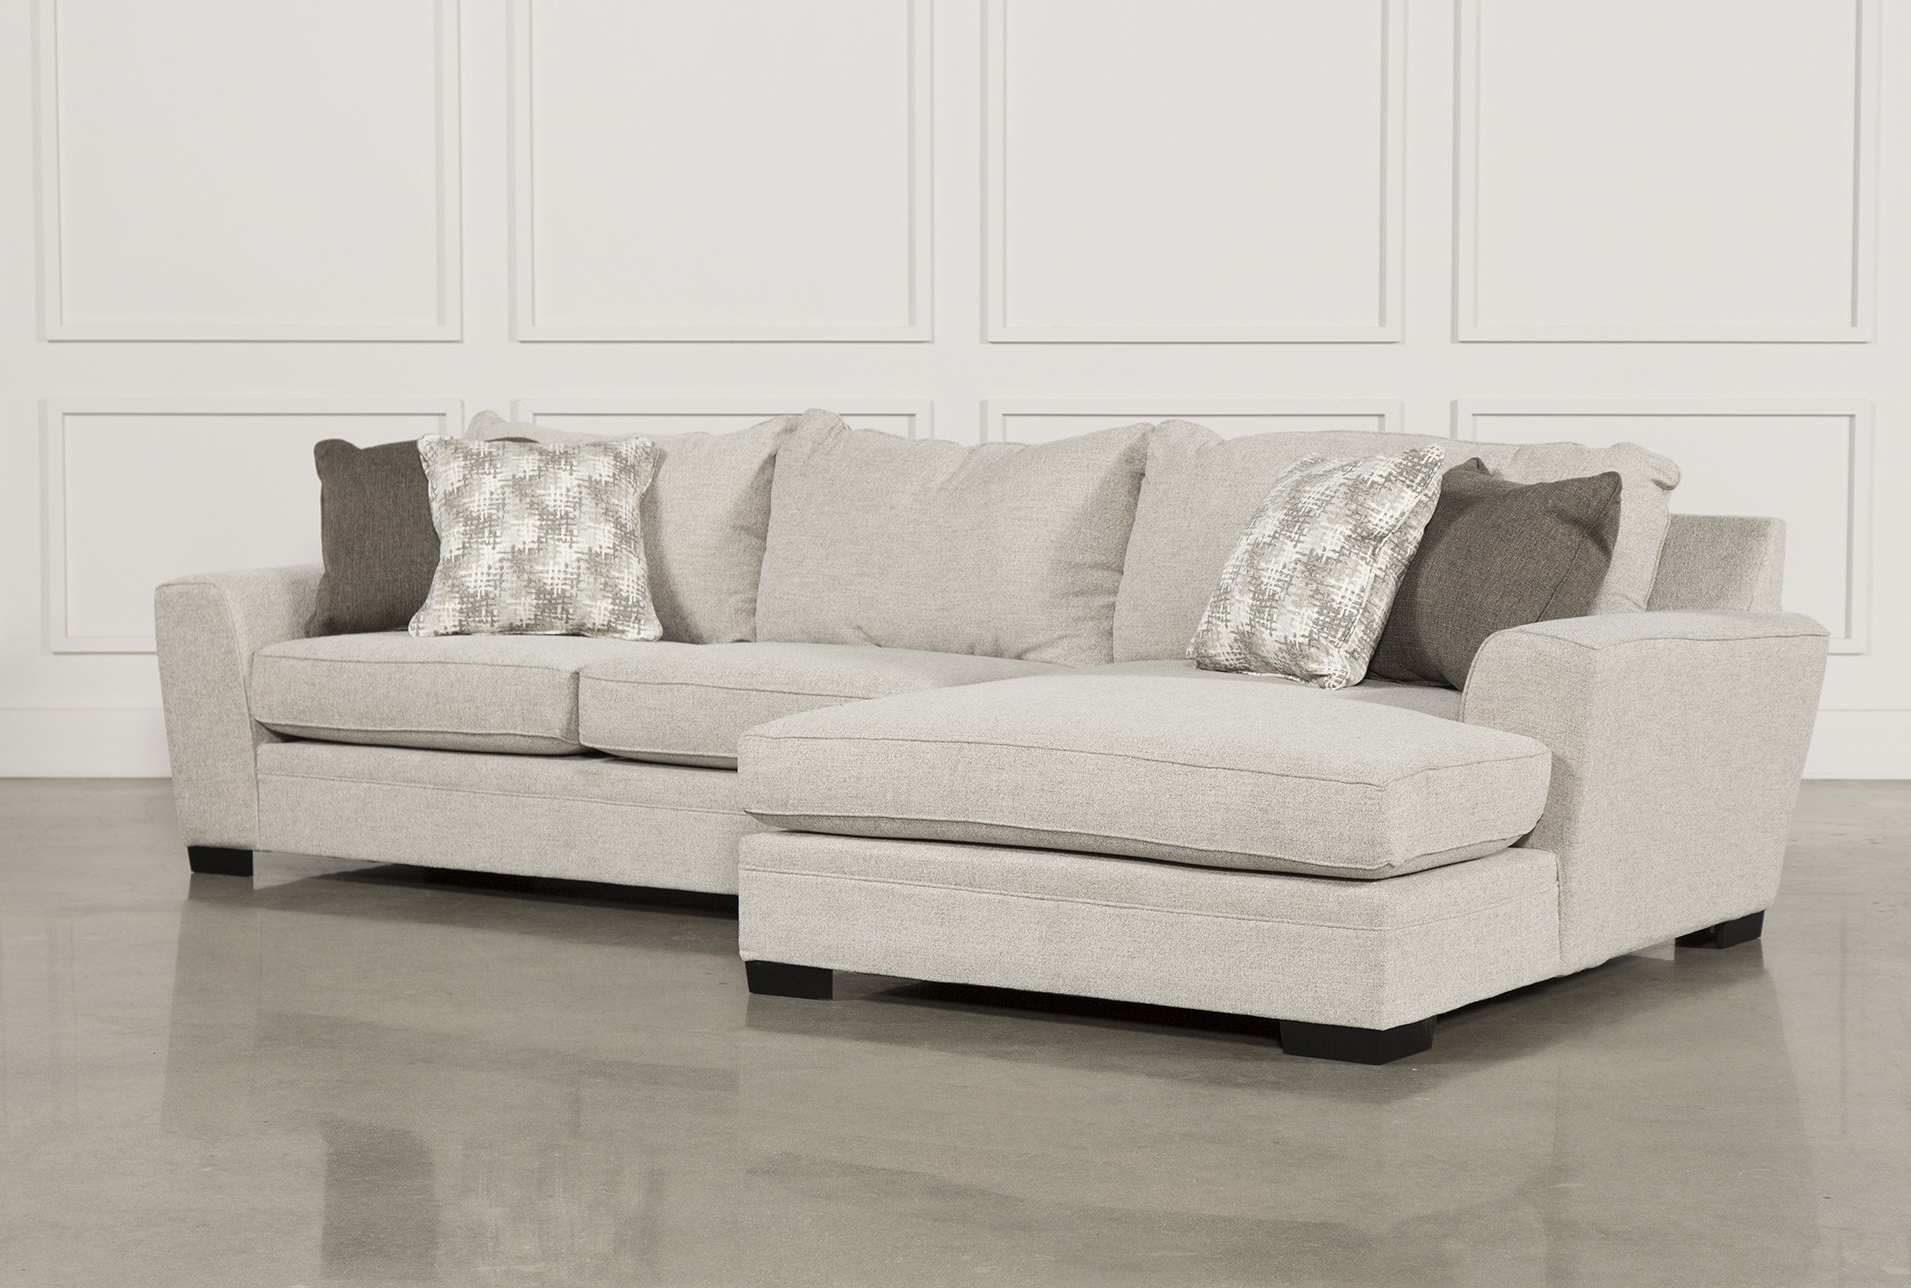 Widely Used Delano 2 Piece Sectional W/laf Oversized Chaise Living Spaces With Regard To Arrowmask 2 Piece Sectionals With Raf Chaise (View 20 of 20)